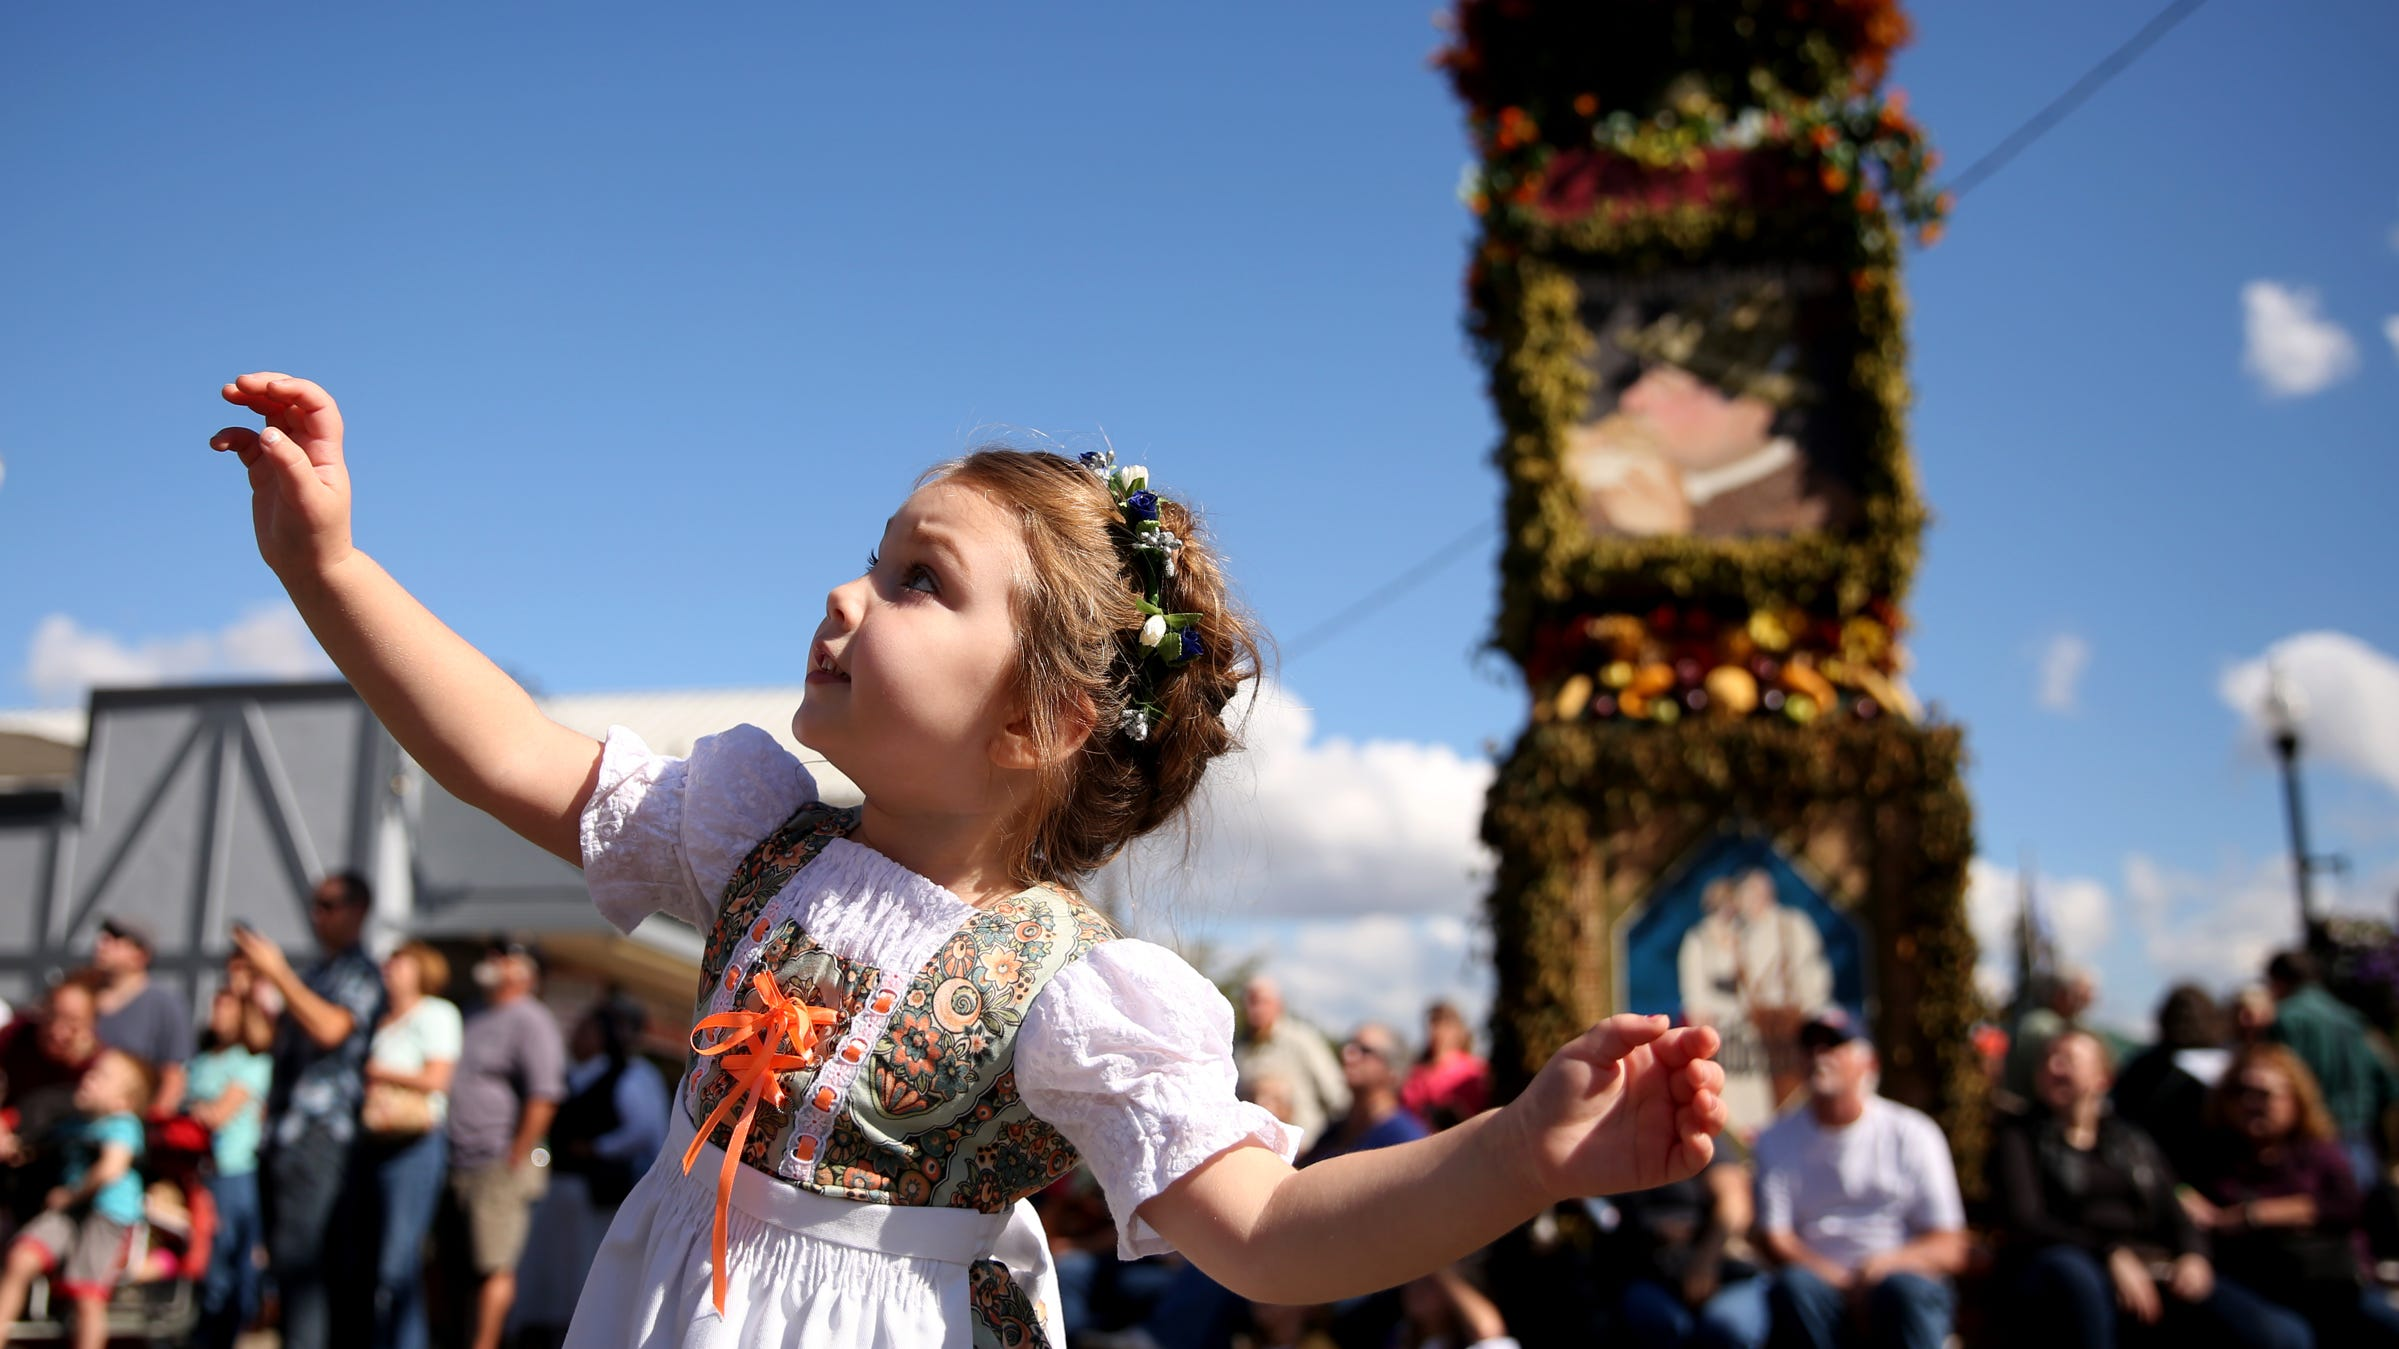 Macy Yanez, 3, of Salem, dances and watches the Glockenspiel play during Oktoberfest in Mt. Angel on Friday, Sep. 14, 2018. Oktoberfest continues Saturday and Sunday.